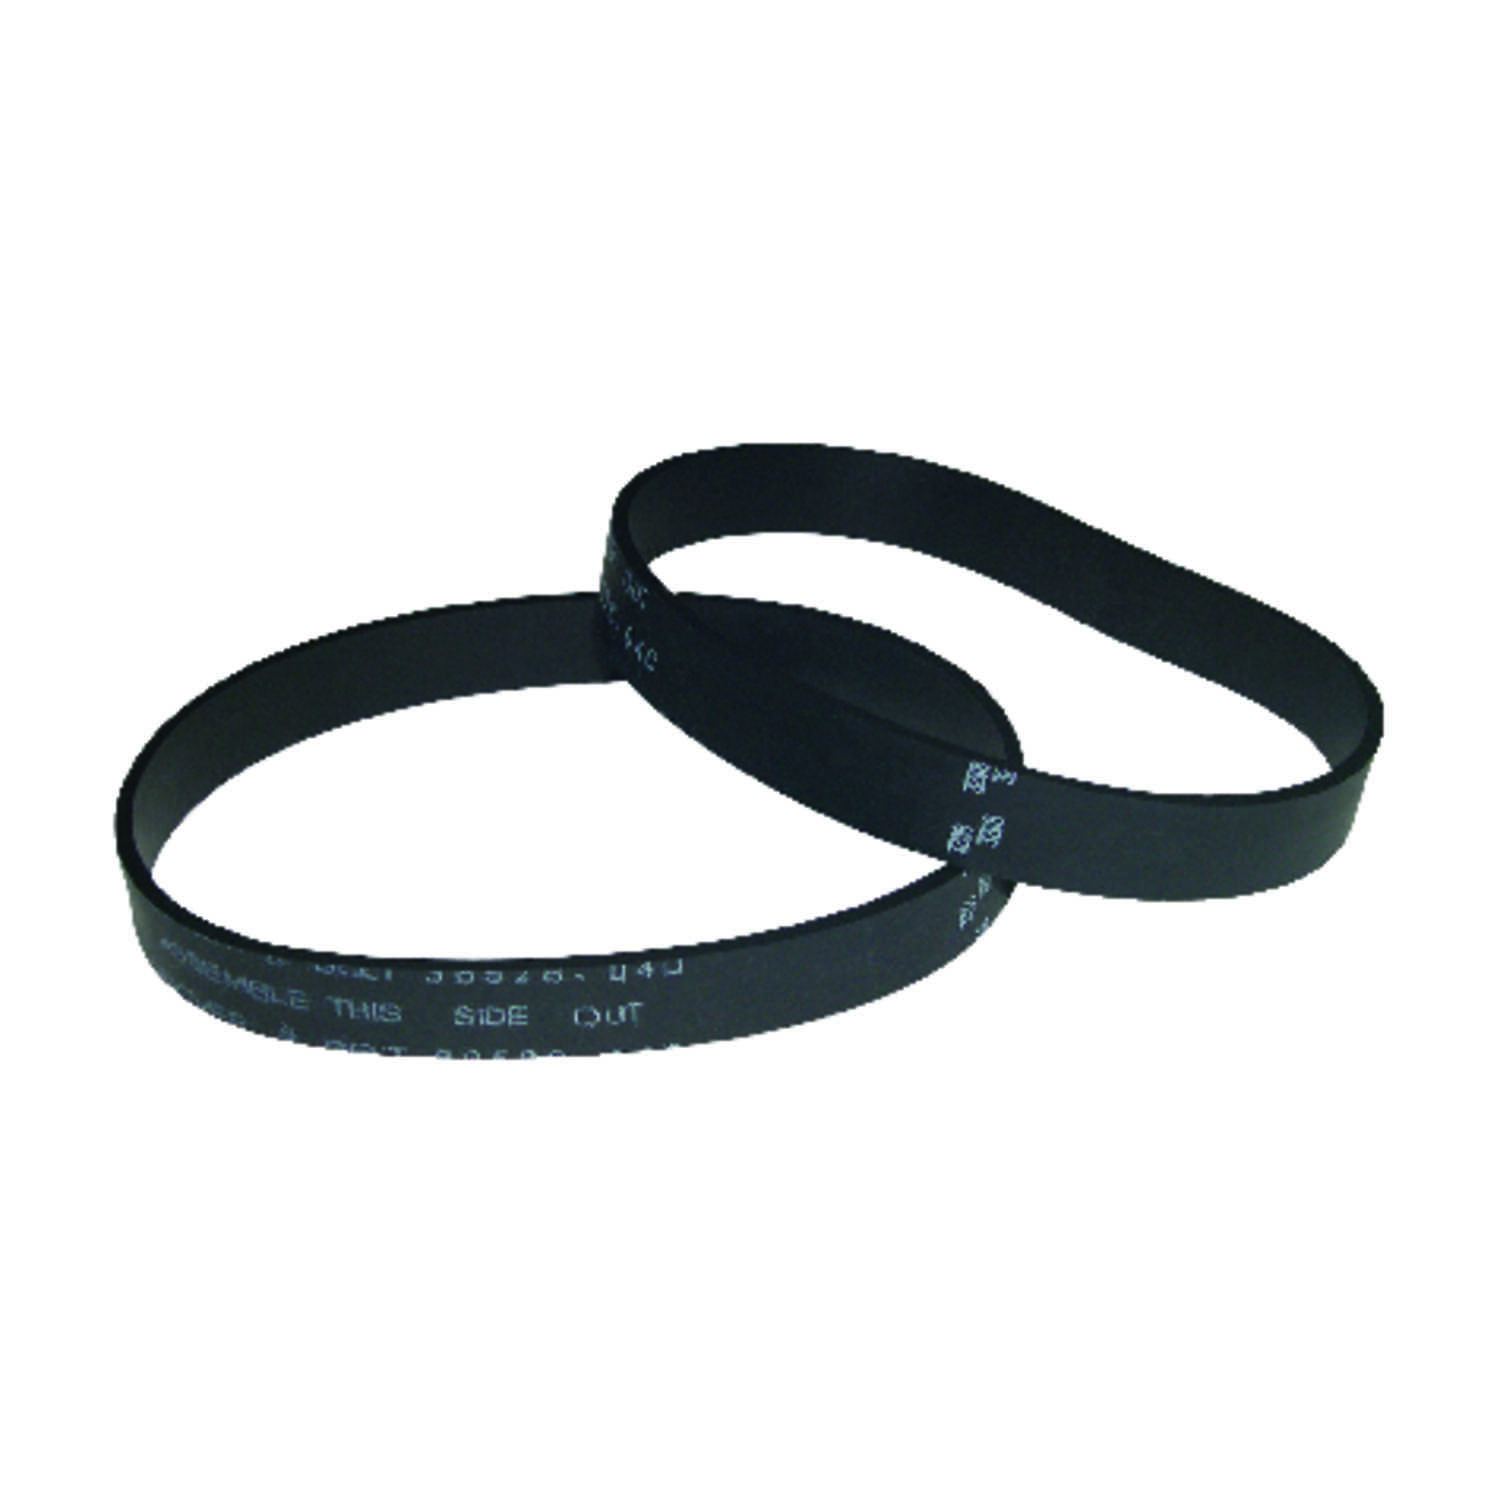 Hoover  Vacuum Belt  For Fits Wind Tunnel models including the bagless Wide path. Bagless PowerMAX a